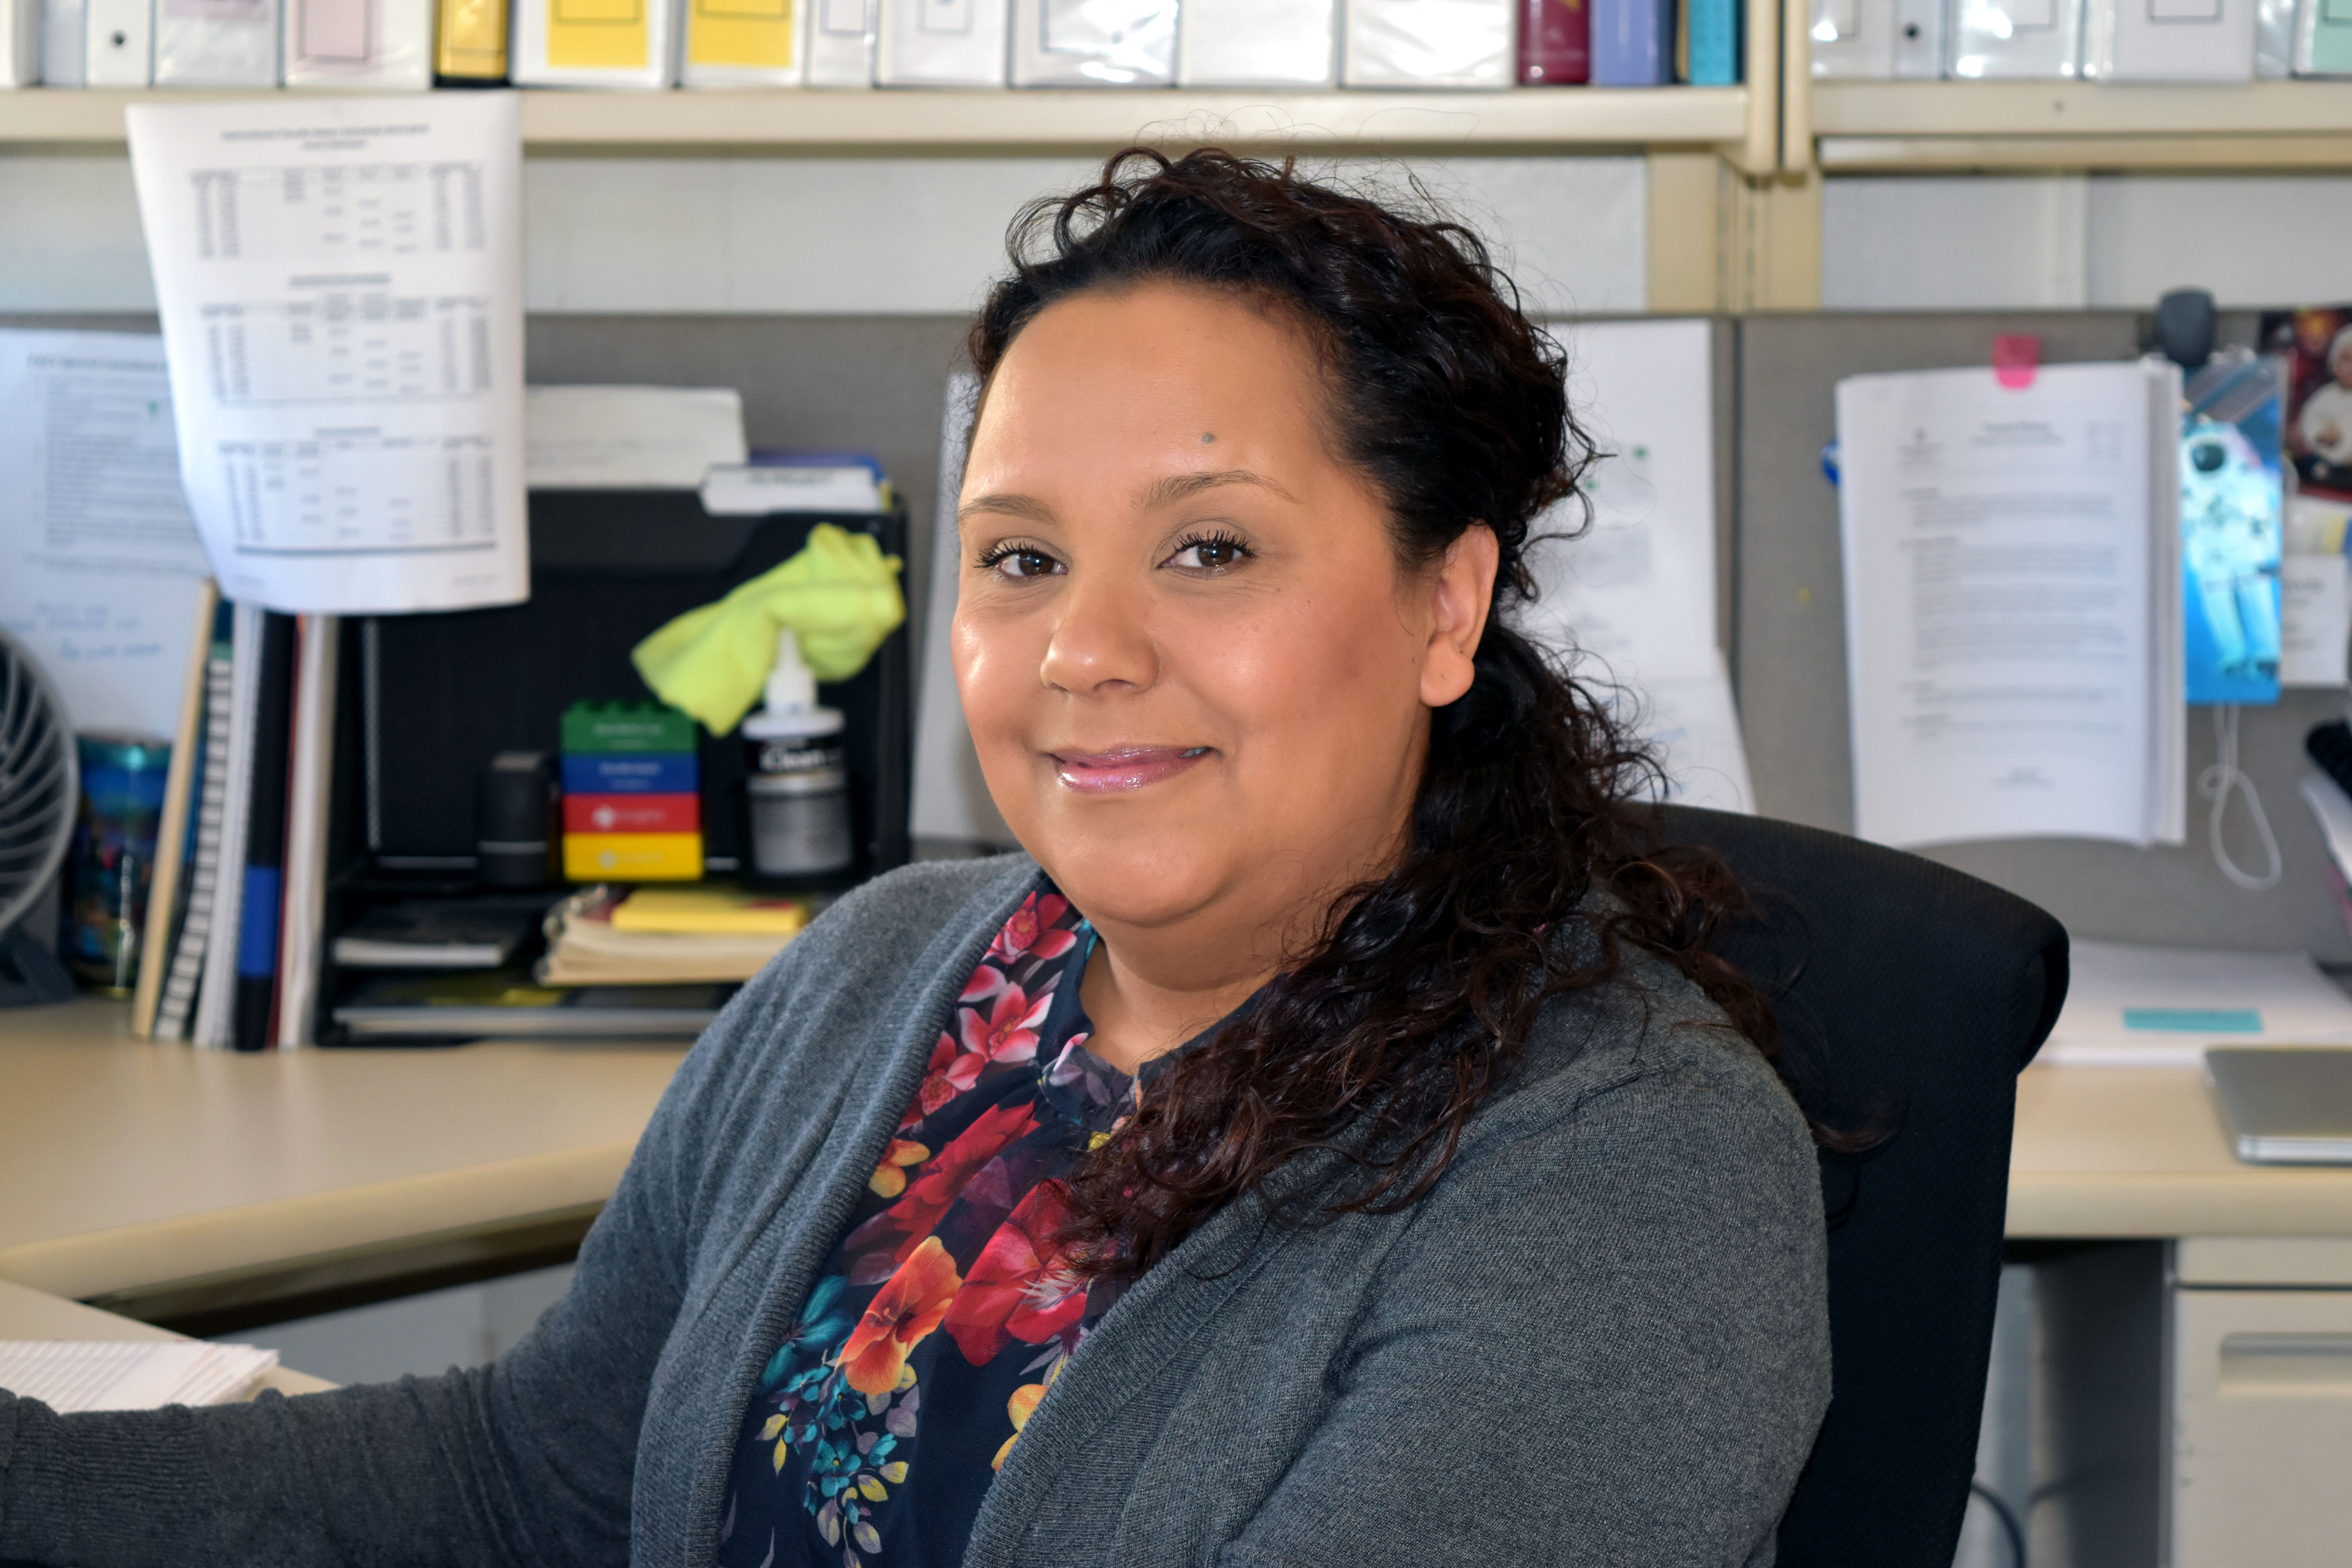 Sarah Arreola works full-time in the Connie L. Lurie College of Education while she completes an master's of public administration.